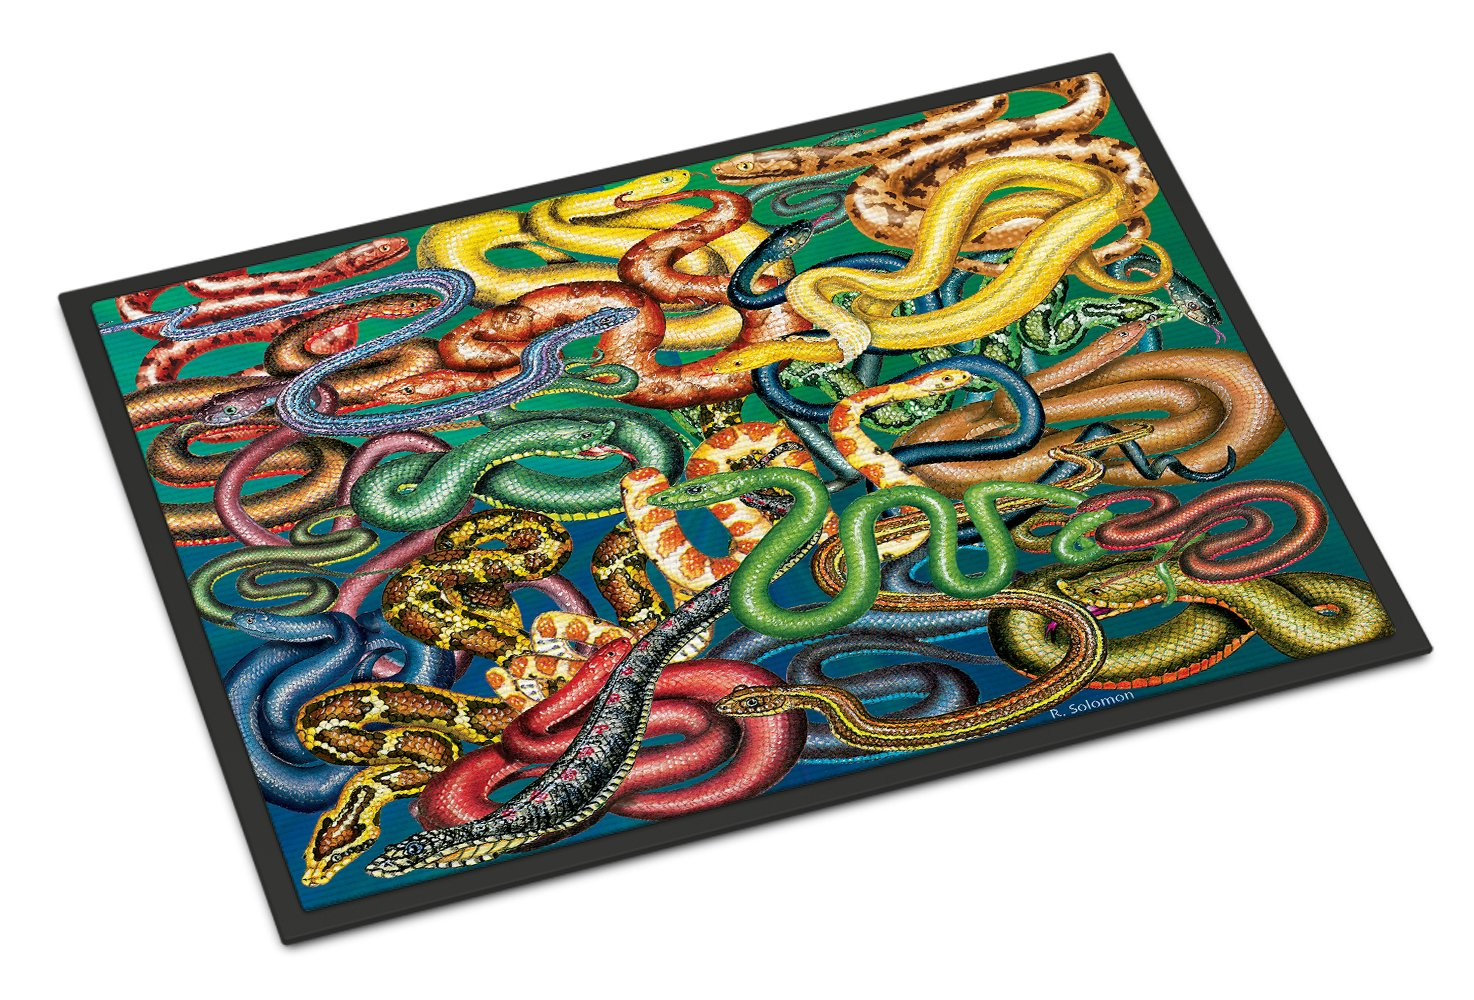 Snakes Indoor or Outdoor Mat 24x36 PRS4031JMAT by Caroline's Treasures